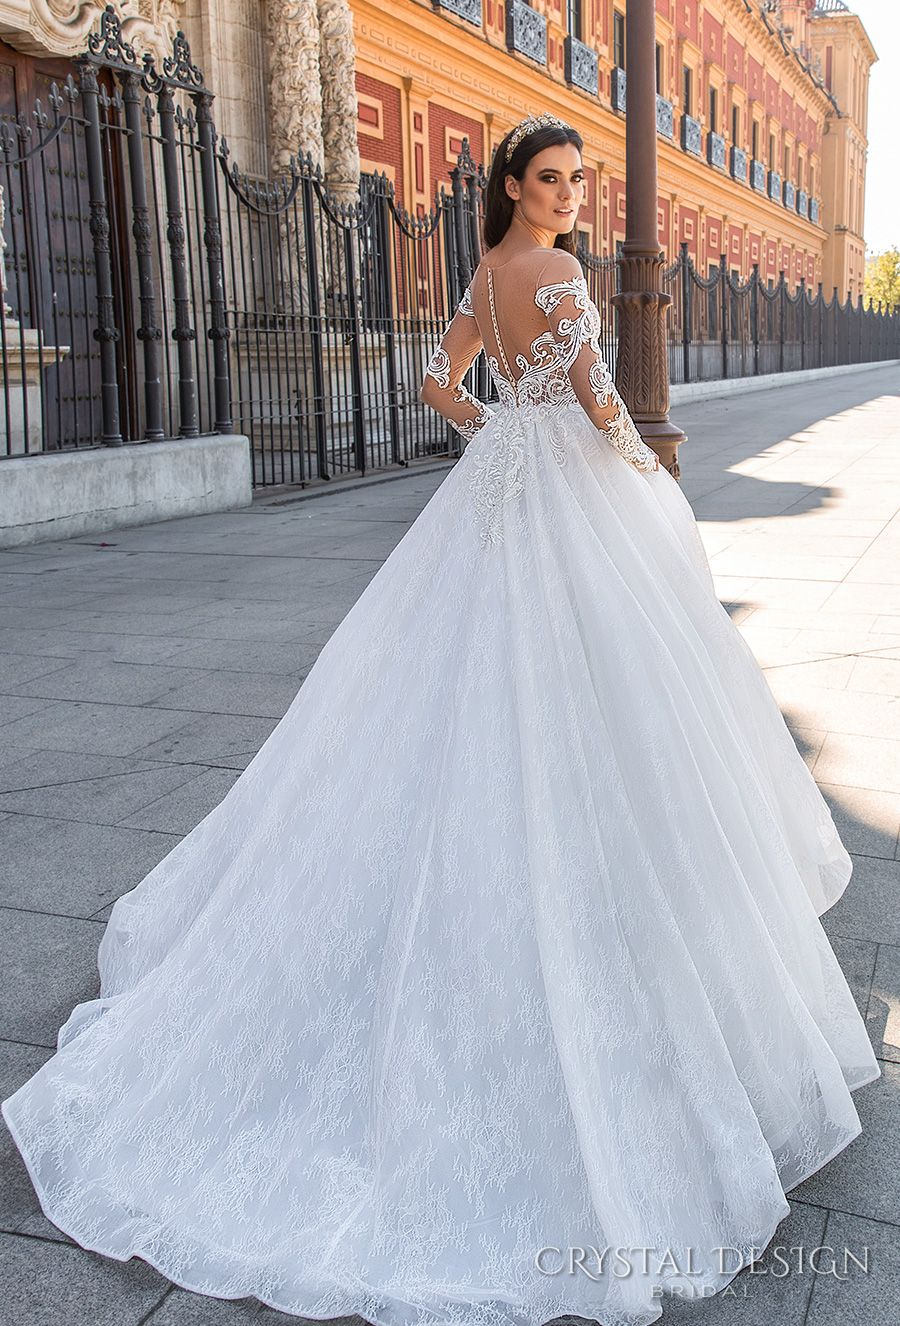 b6da644238054 Beautiful Wedding Dresses from the 2017 Crystal Design Collection ...